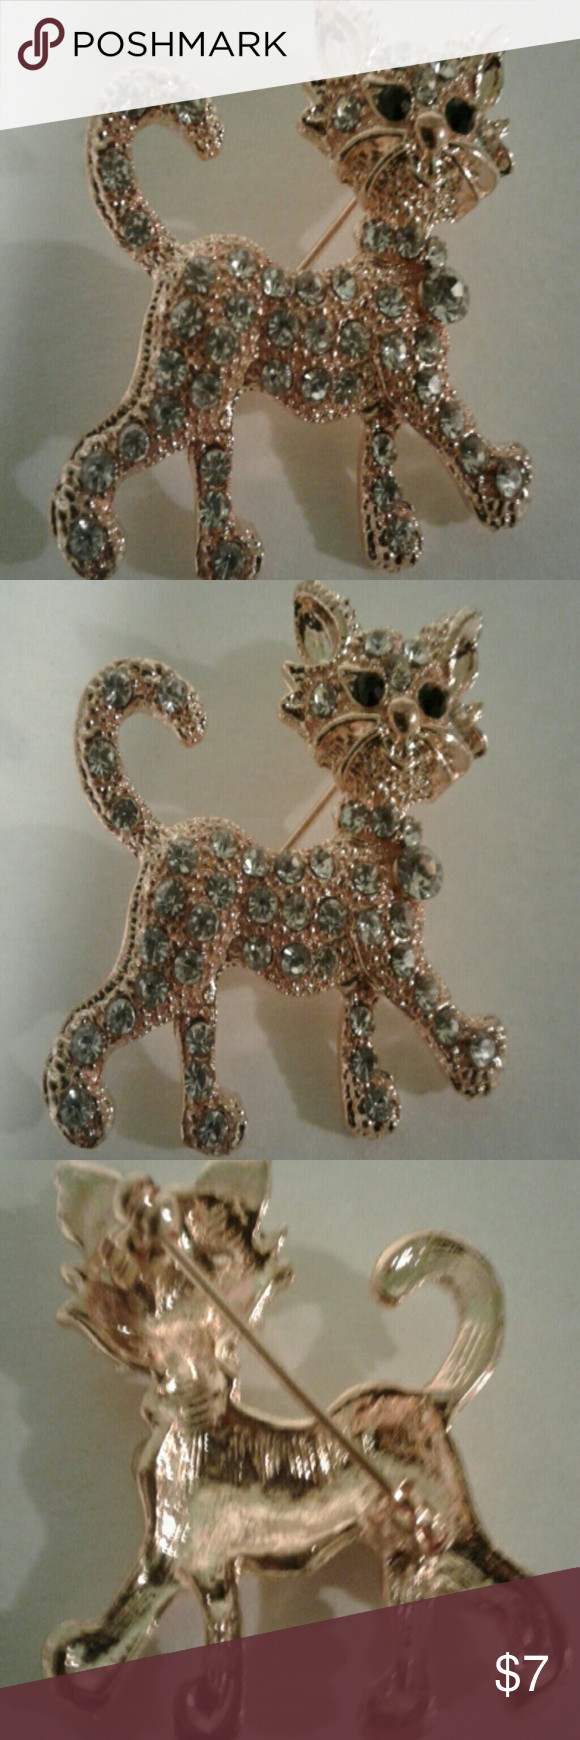 Adorable Gold Tone Crystal Kitty Cat Pin A very pretty piece of costume jewelry for the cat lovers!   This kitty is gold in color and is embellished with crystals and has black jeweled eyes.   Measures approximately 1 1/4 inches tall by 1 1/4 inches wide.   Just the right size to wear on your collar or use to hold a scarf.   I love cats and if I find more than one in a piece, you will find here! unbranded  Jewelry Brooches